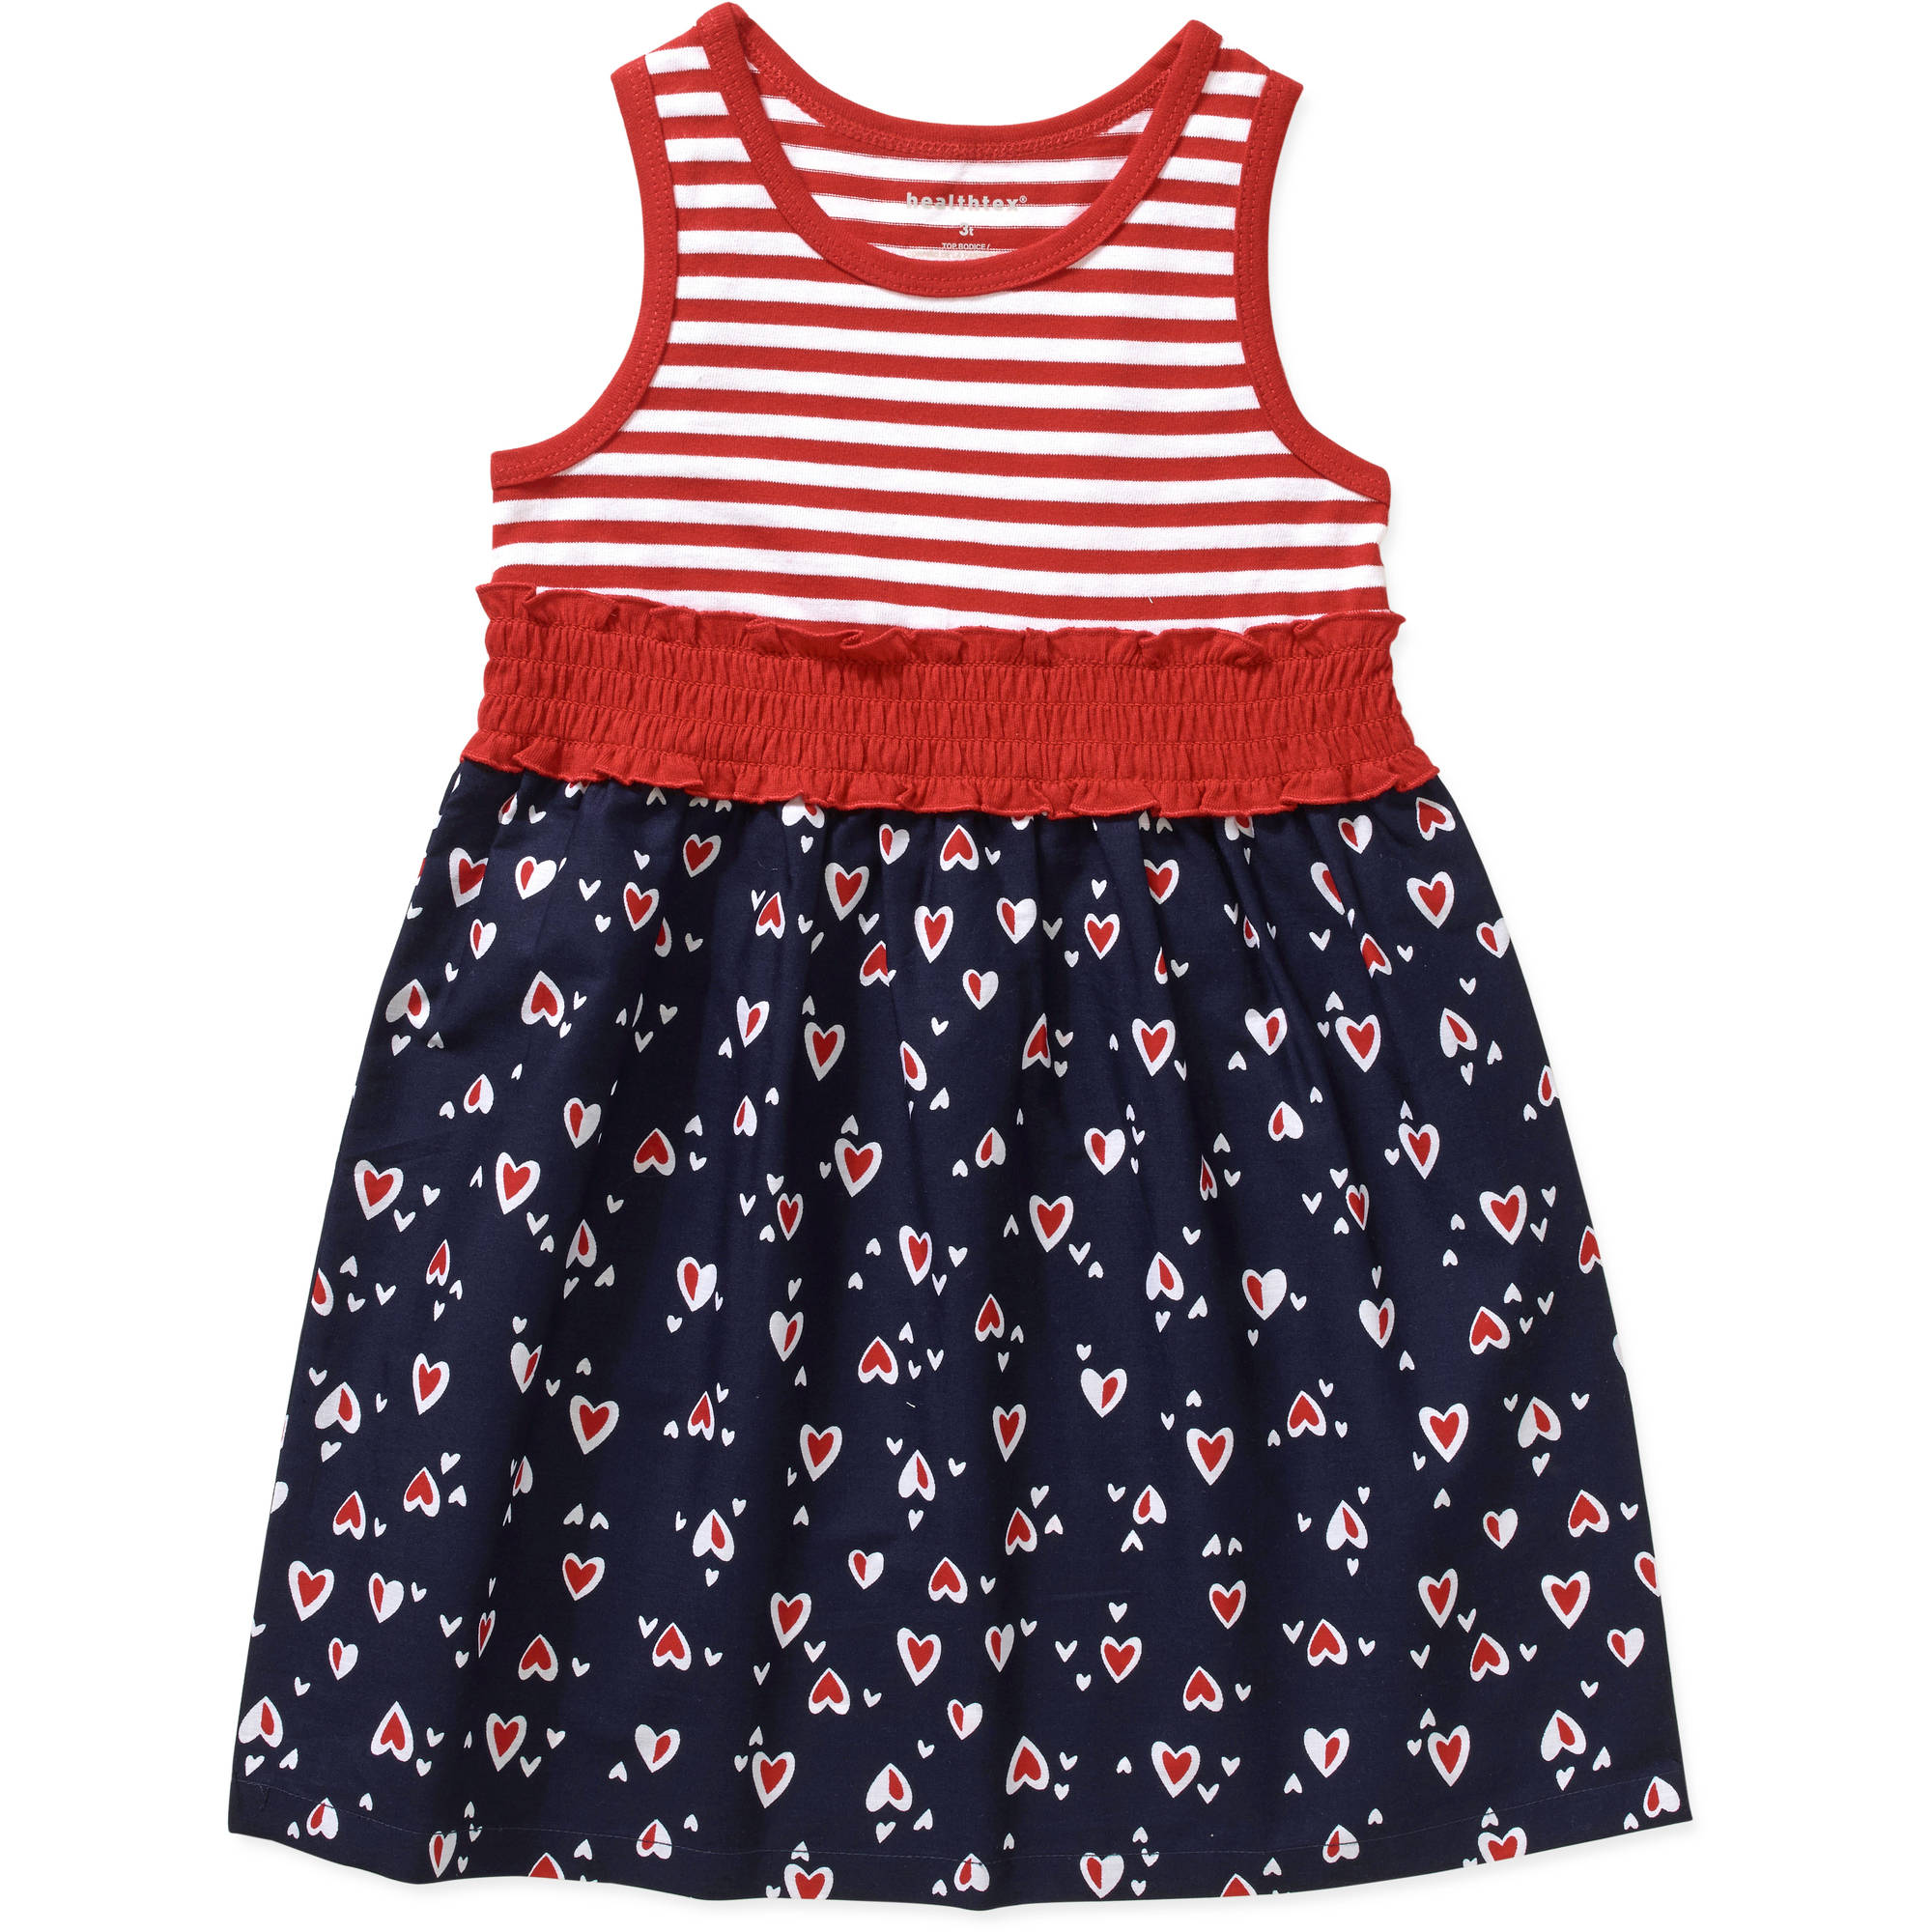 Healthtex Baby Toddler Girl Essential Summer Knit and Woven Dress